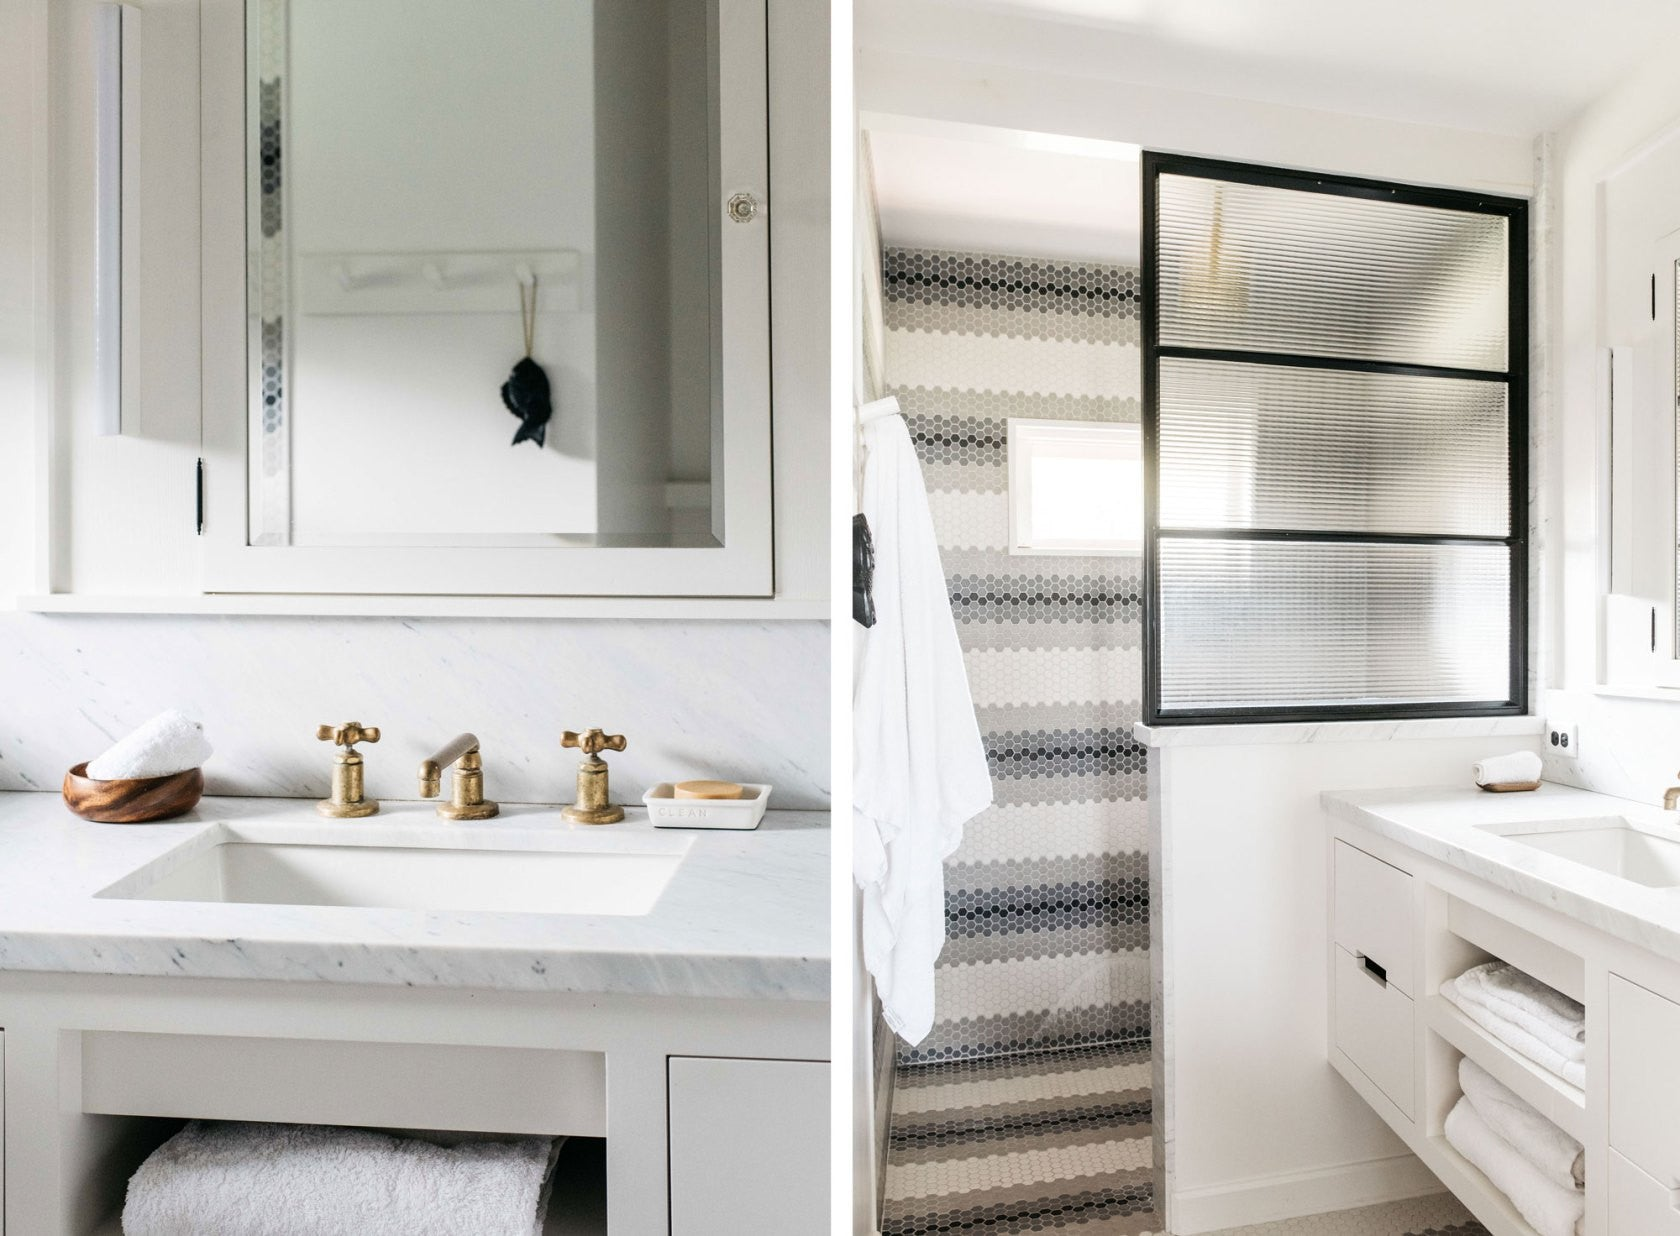 Monday Mention Modern And Bright Cottage Interior With Remodelista - Remodelista bathroom